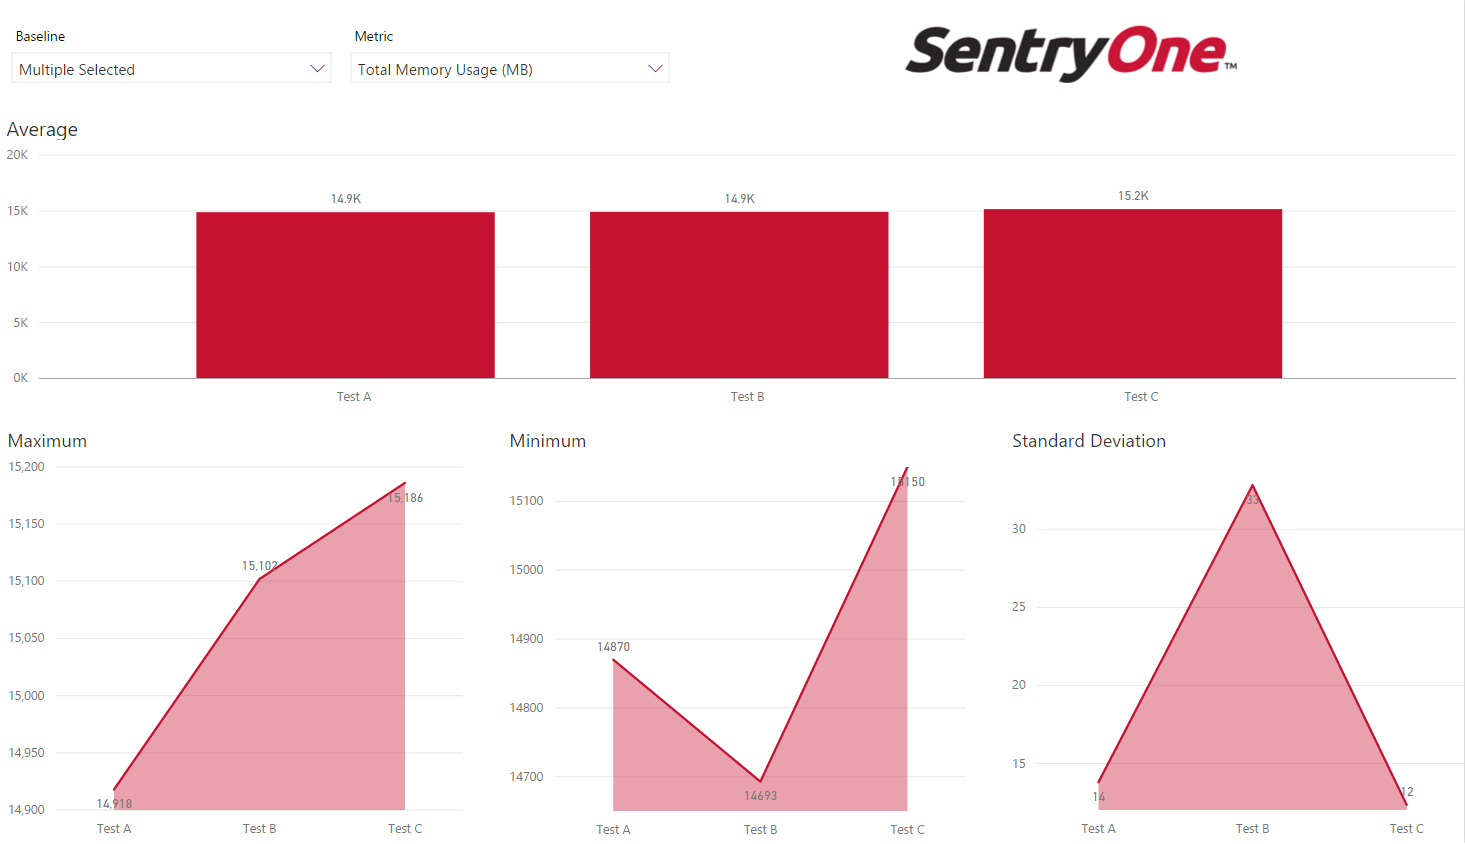 A Power BI Dashboard comparing multiple SentryOne Baselines